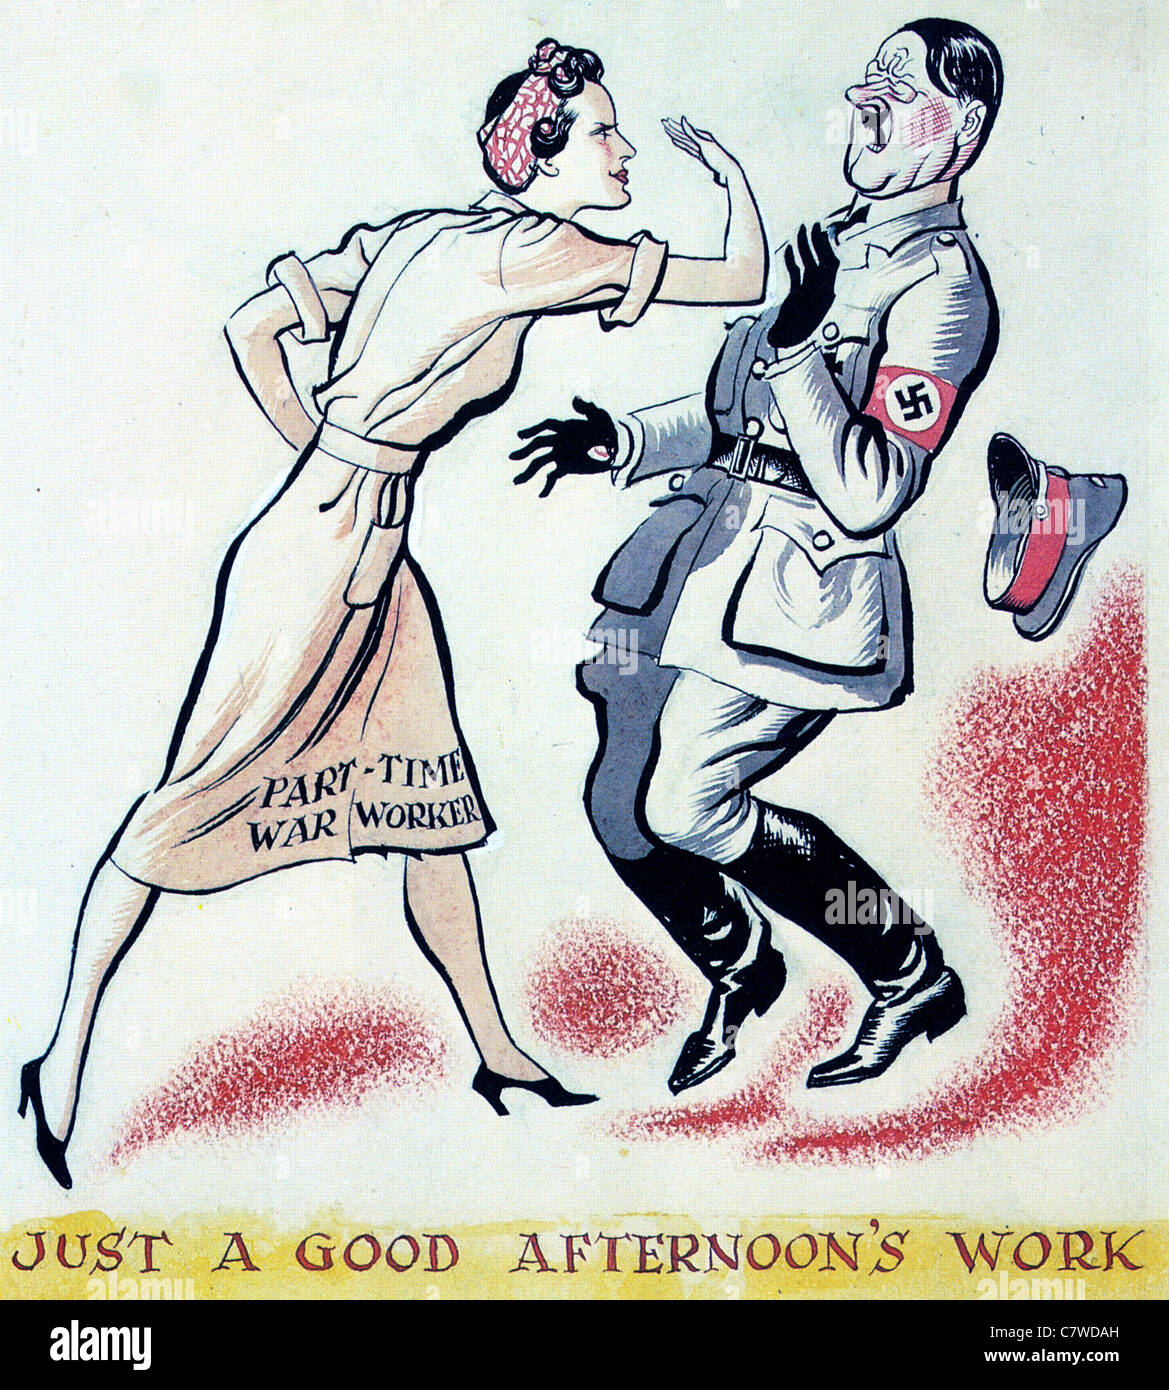 PART TIME WAR WORKER British WW2 poster - Stock Image